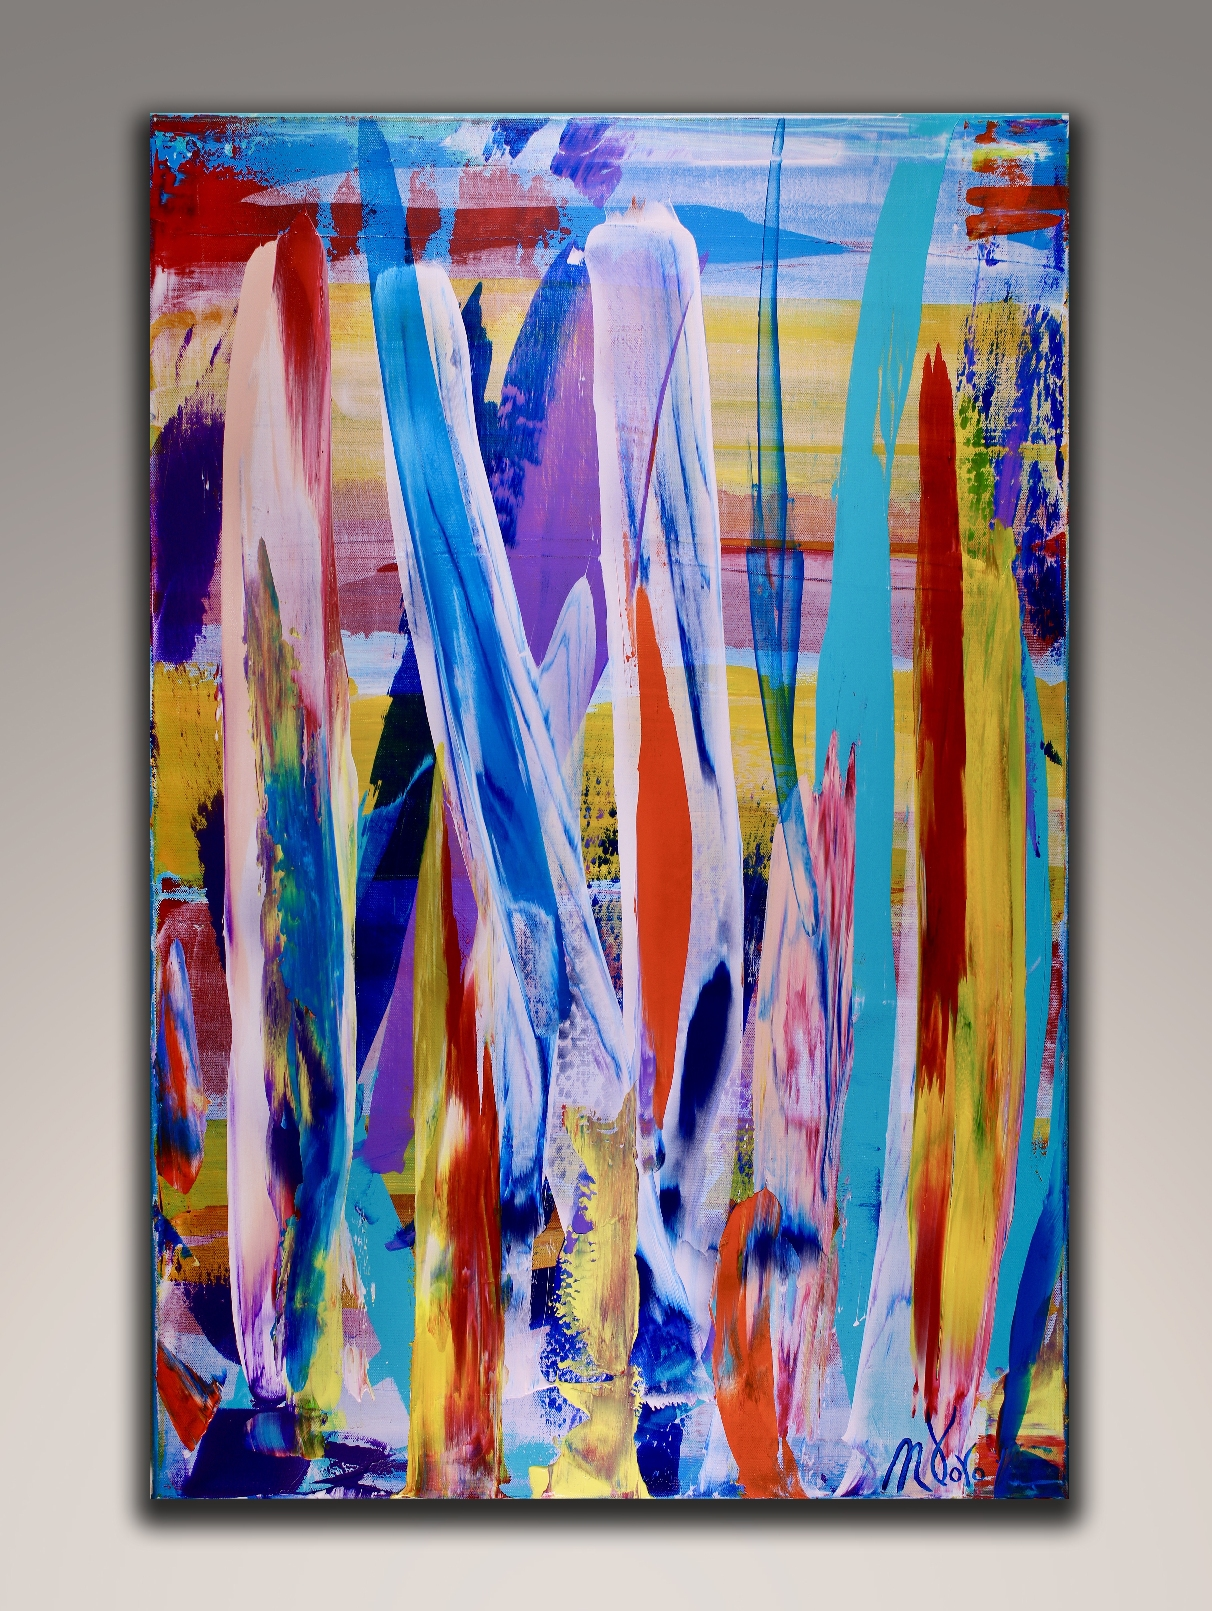 Competing for the Sun 2 by Nestor Toro (2018) Abstract art - Acrylic painting by Nestor Toro